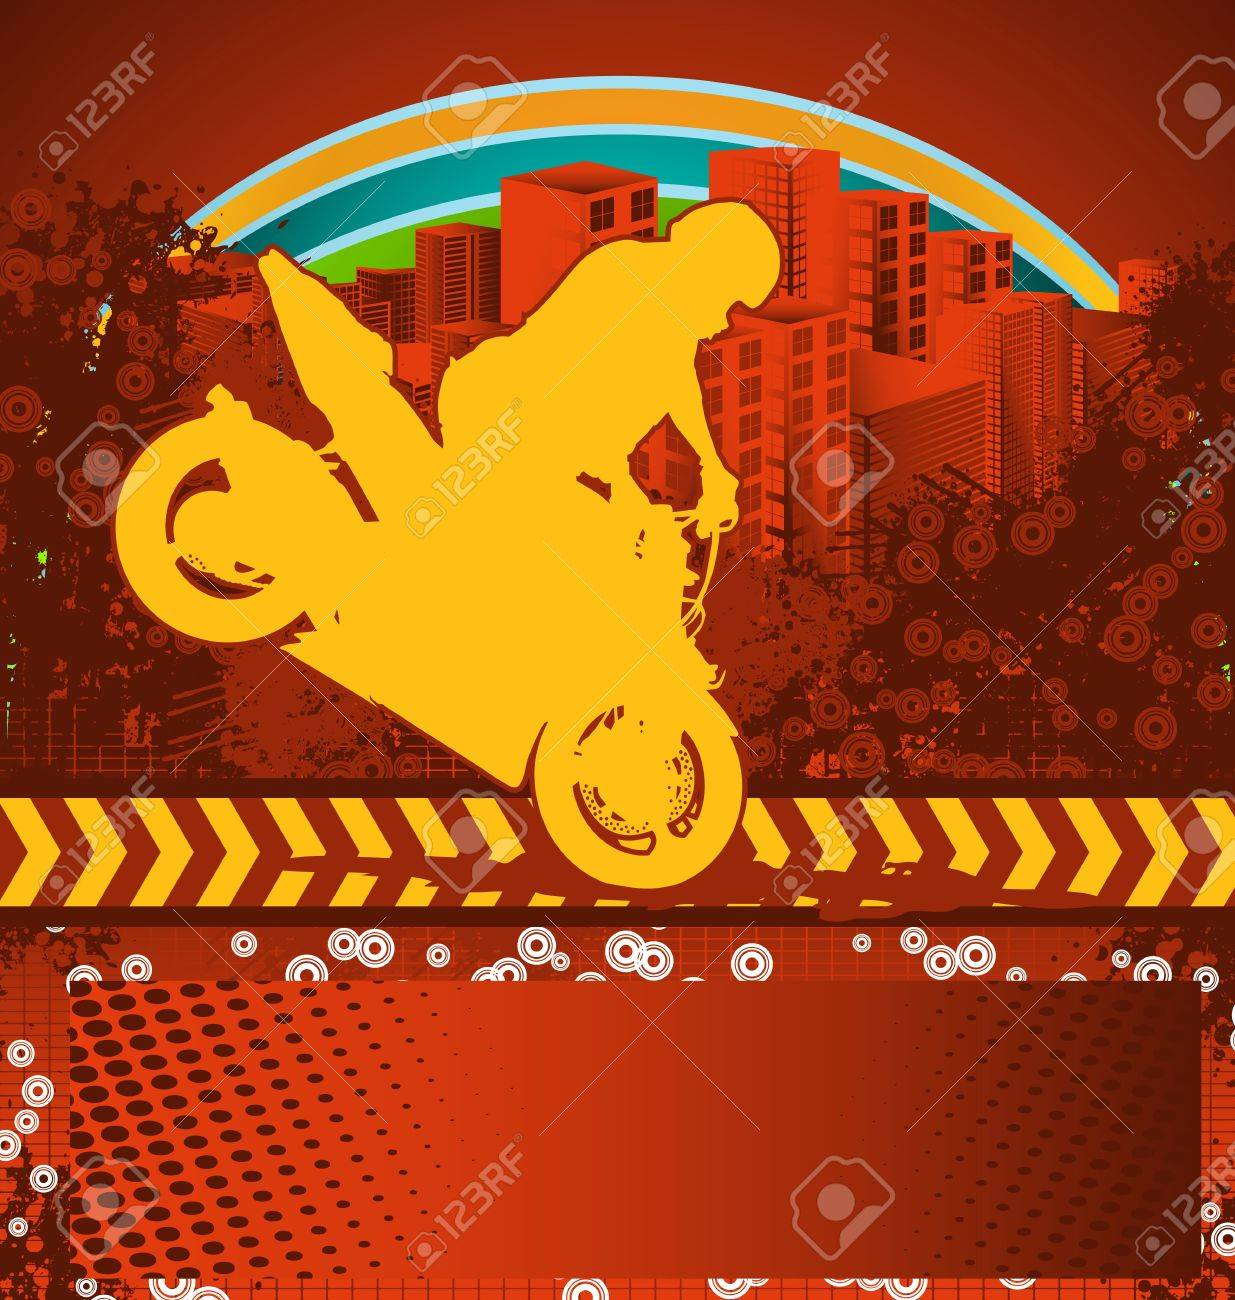 Abstract grunge background with motorcyclist silhouette Stock Vector - 10547931